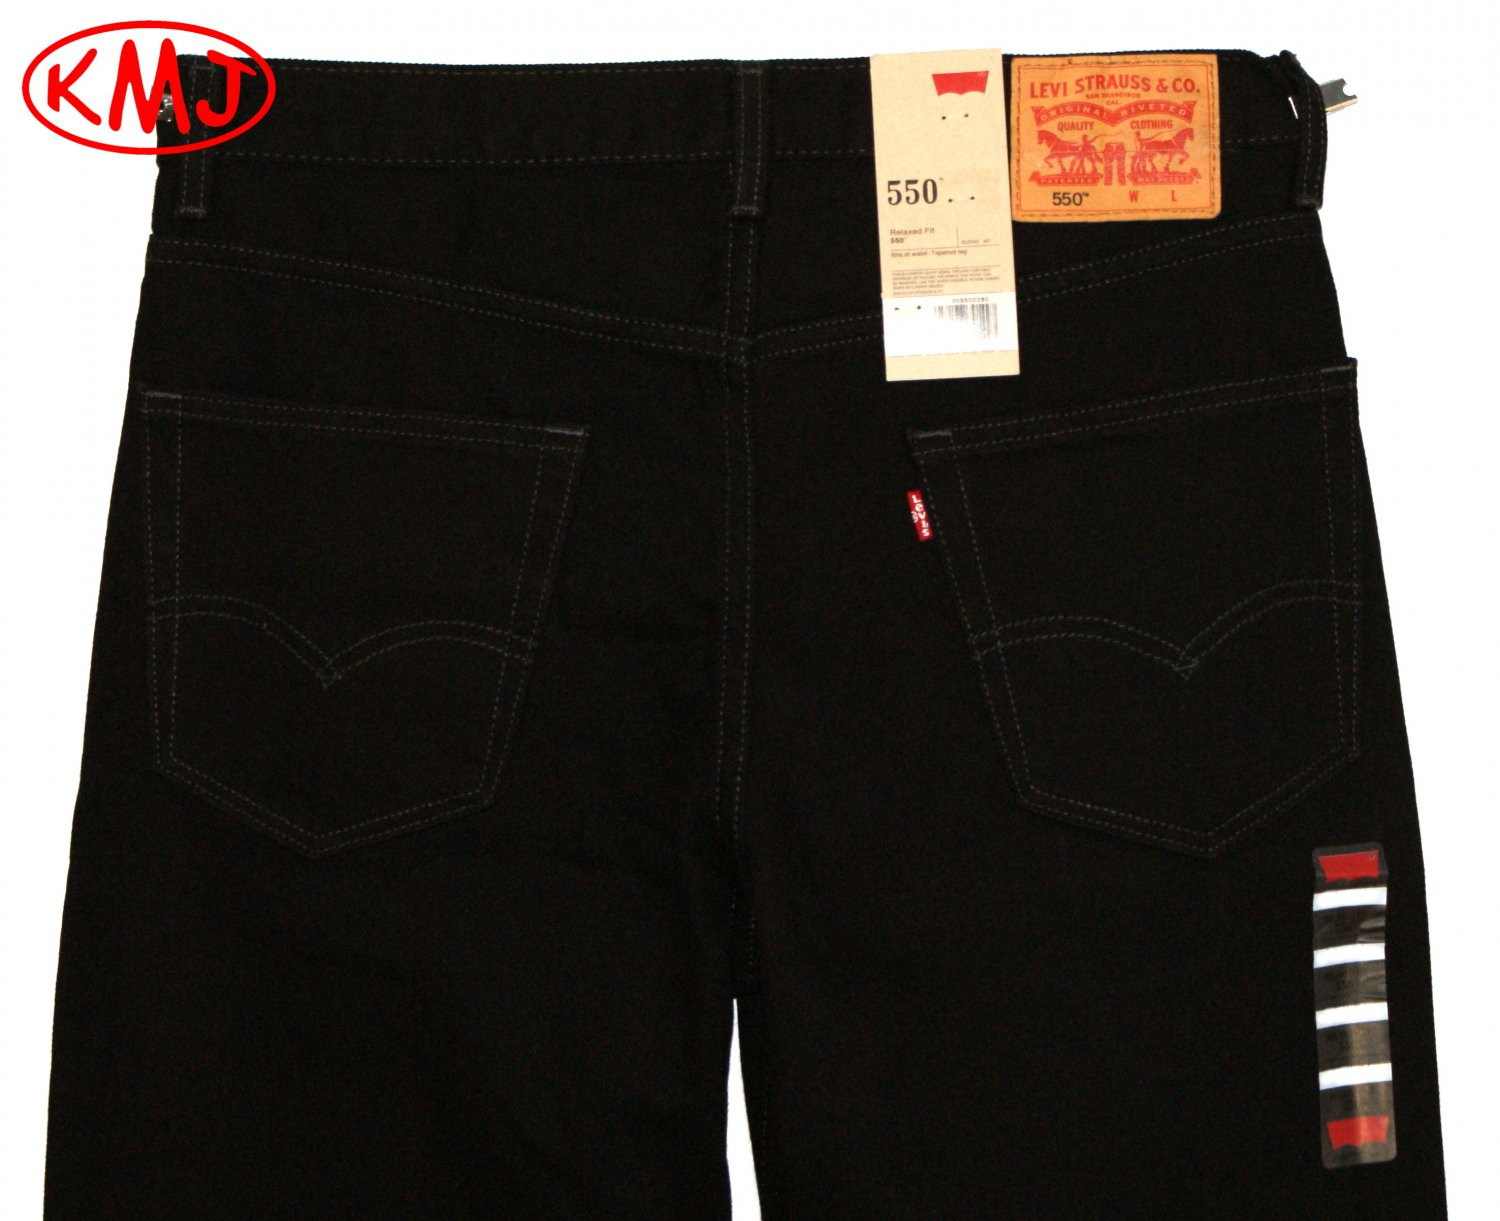 Brand New LEVI'S 550 RELAXED FIT CLASSIC BLACK DENIM JEANS in size W32 W36